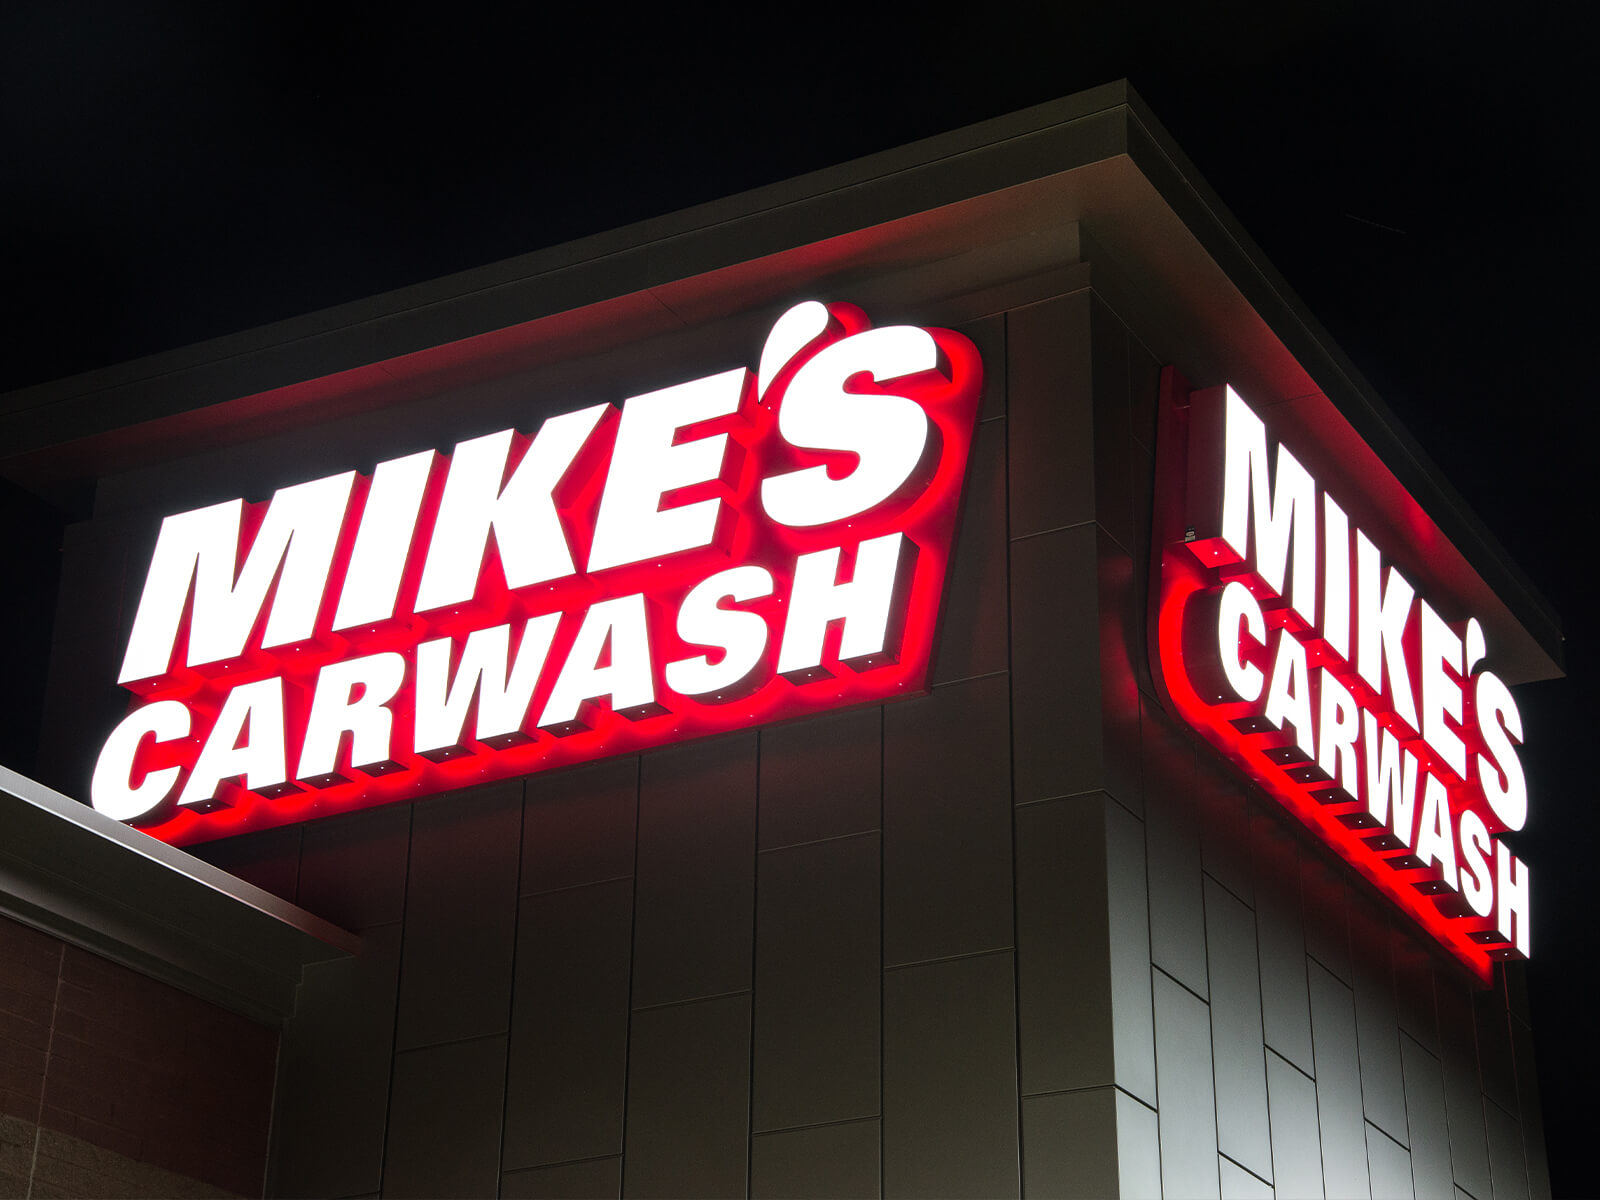 One of many Mike's Carwash locations we've done complete signage packages for using creative fabrication techniques to give this sign an awesome glow at night time.